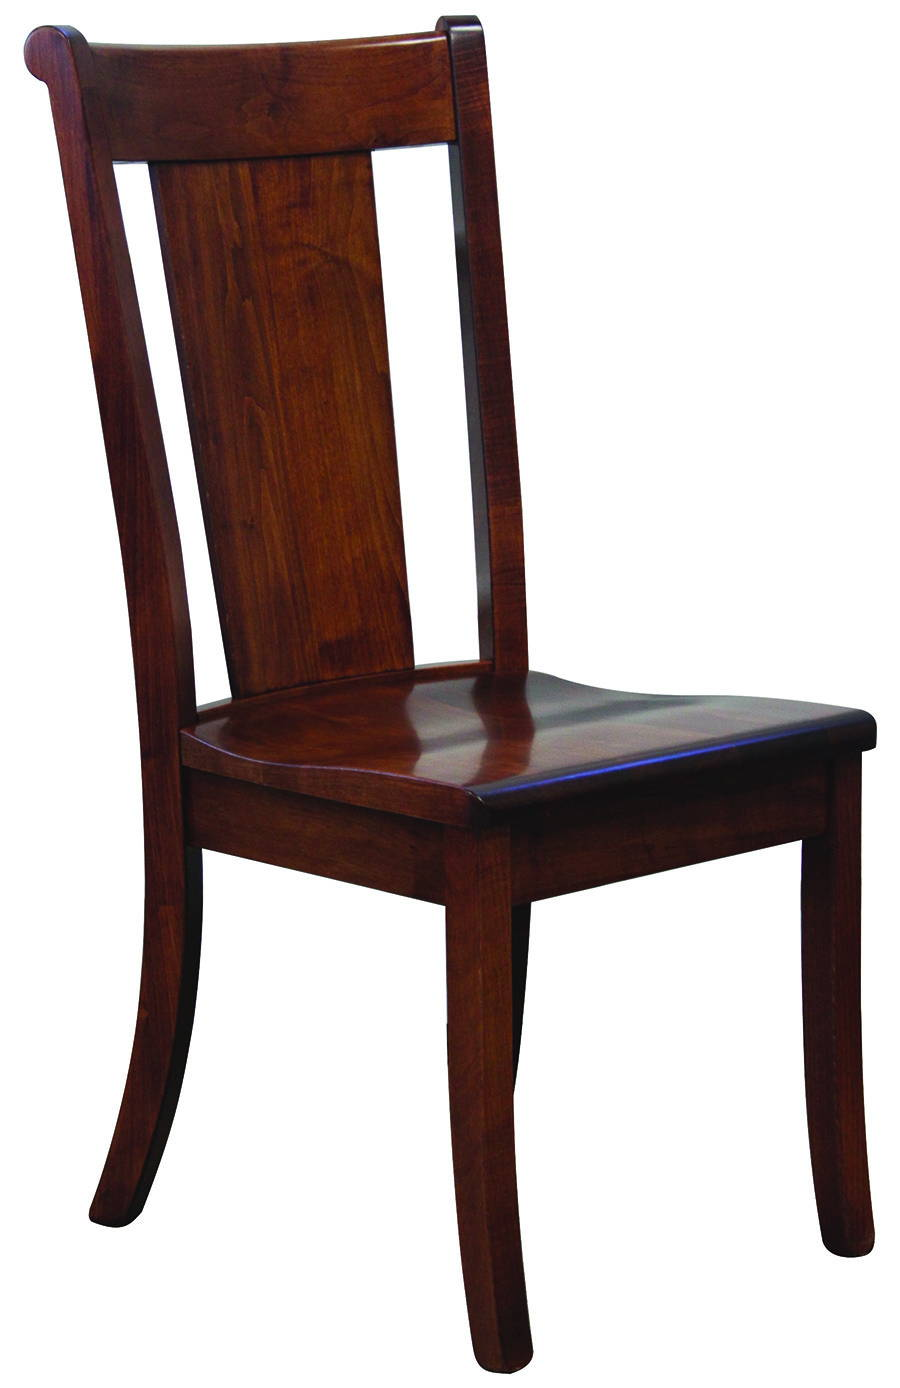 At Home Kitchen Chairs.Solid Wood And Handcrafted Kitchen And Dining Chairs Harvest Home